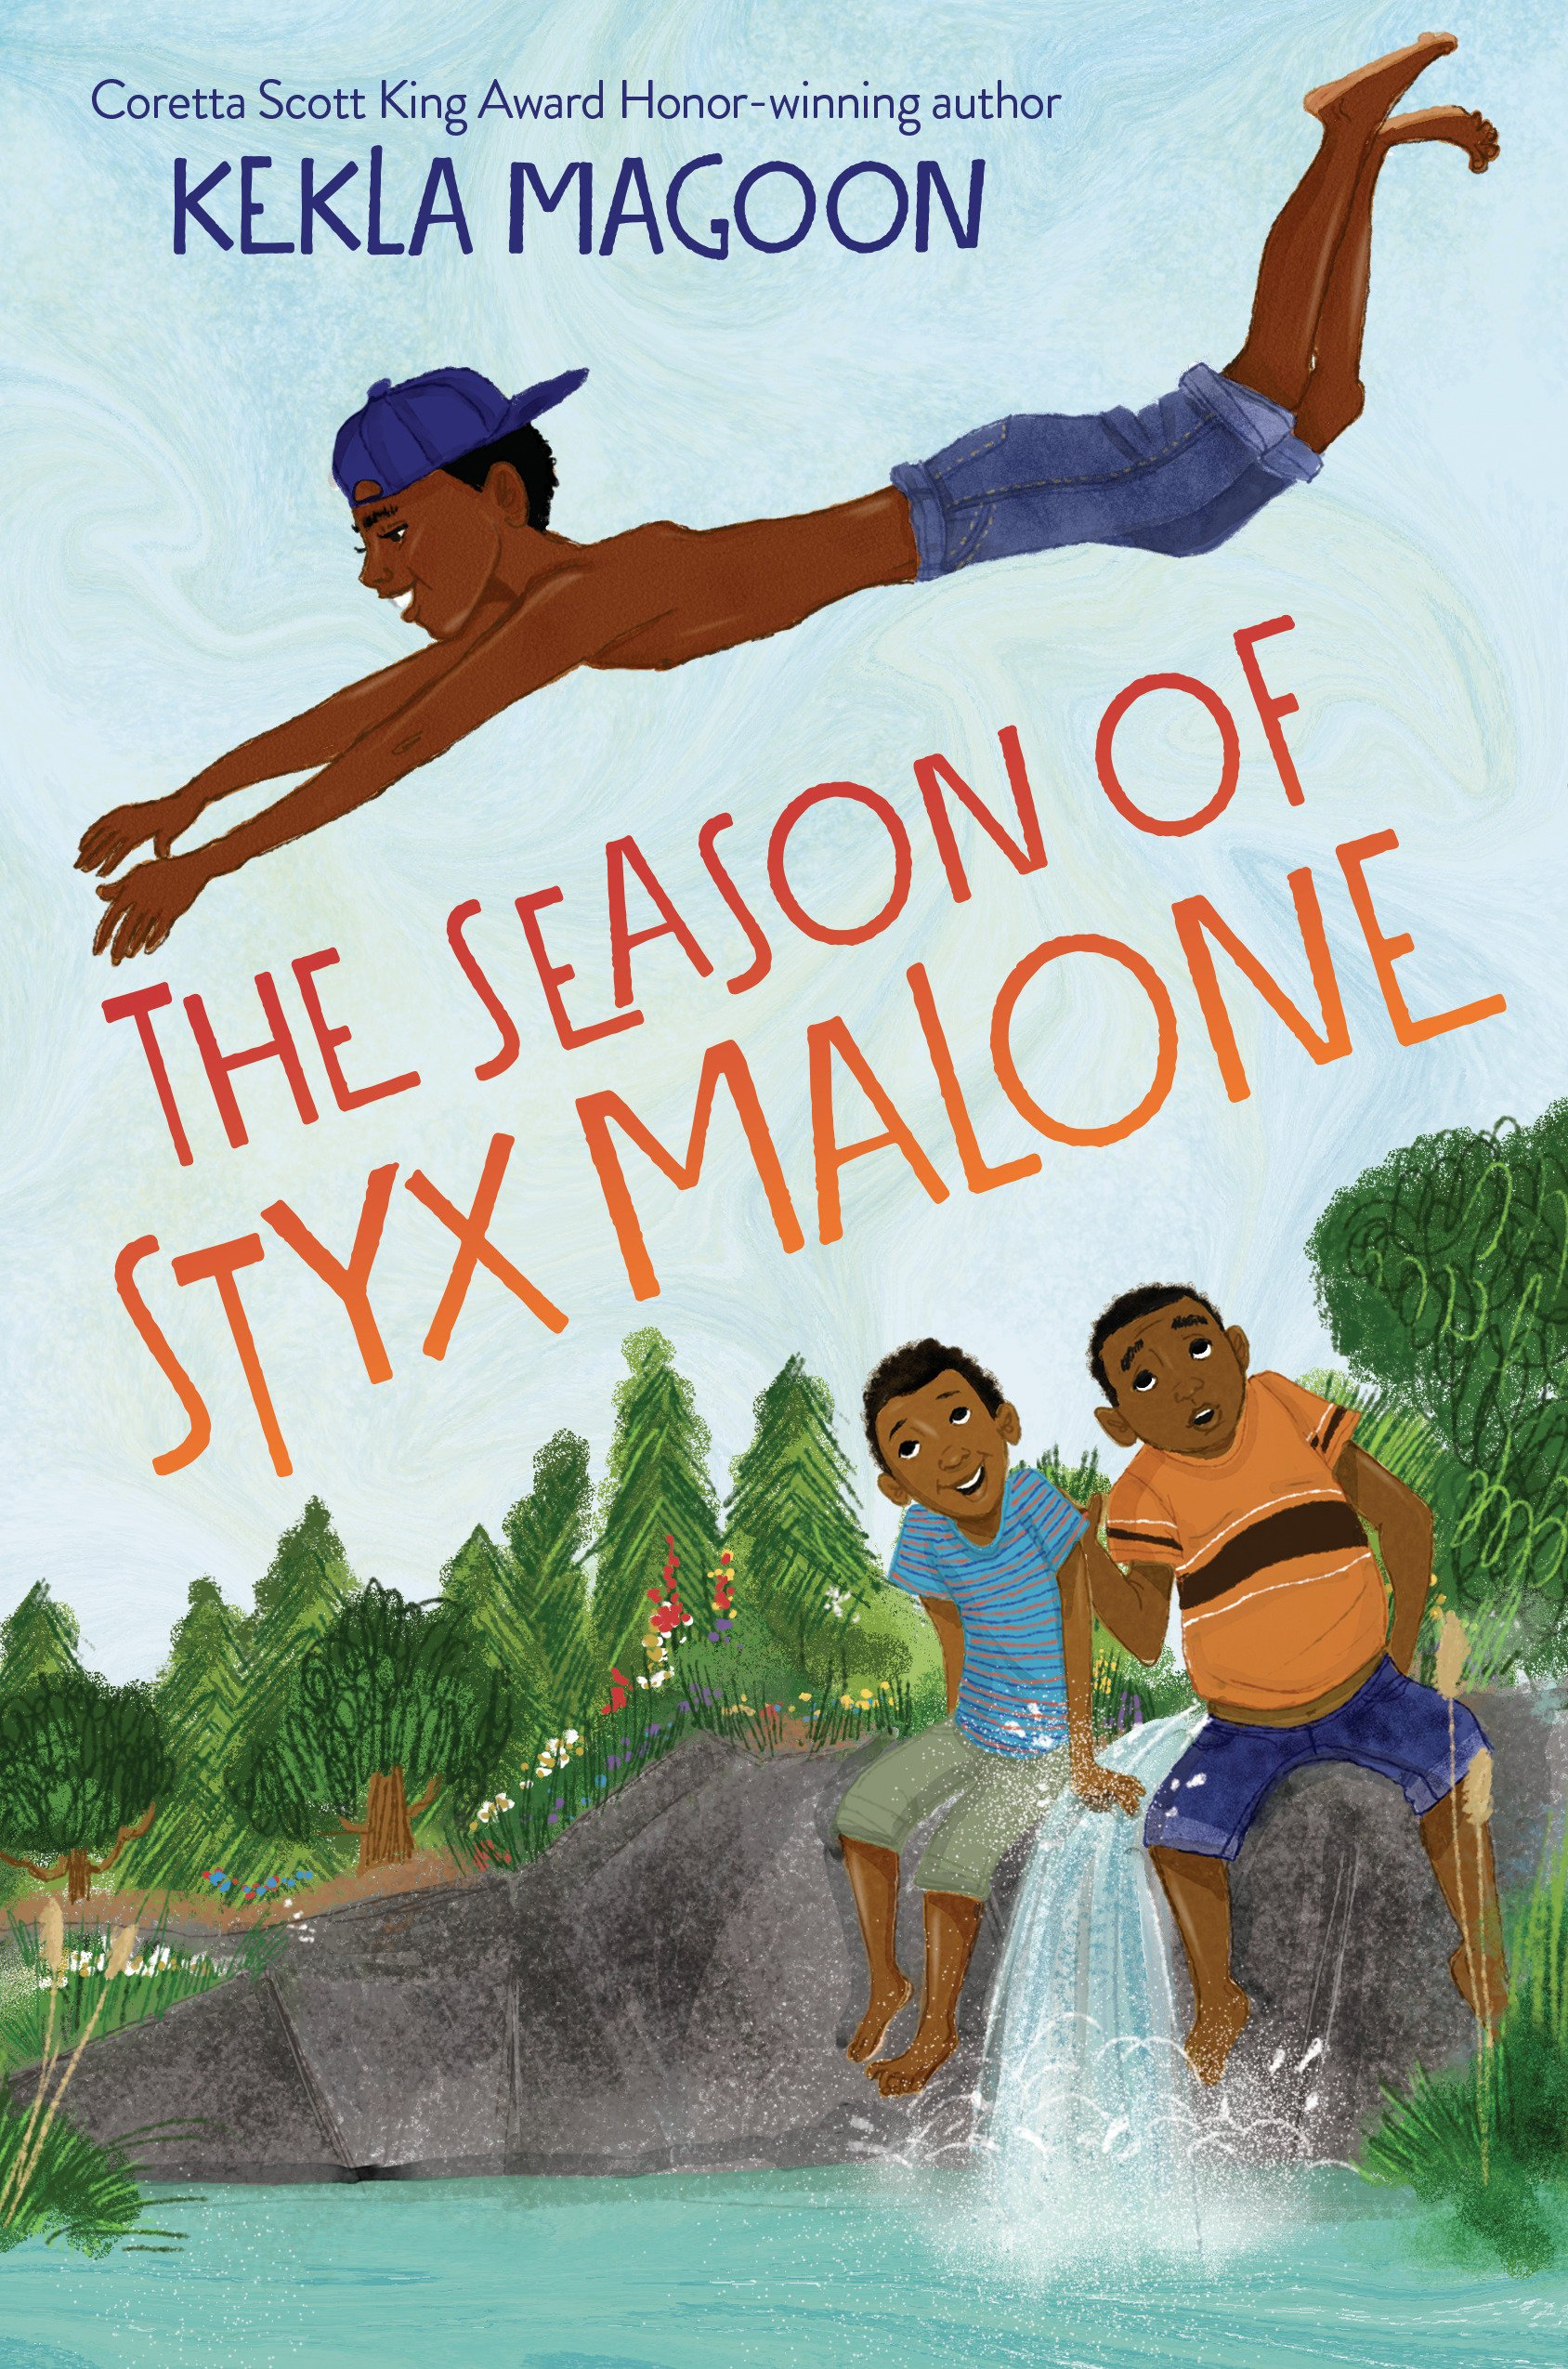 Image result for season styx malone amazon